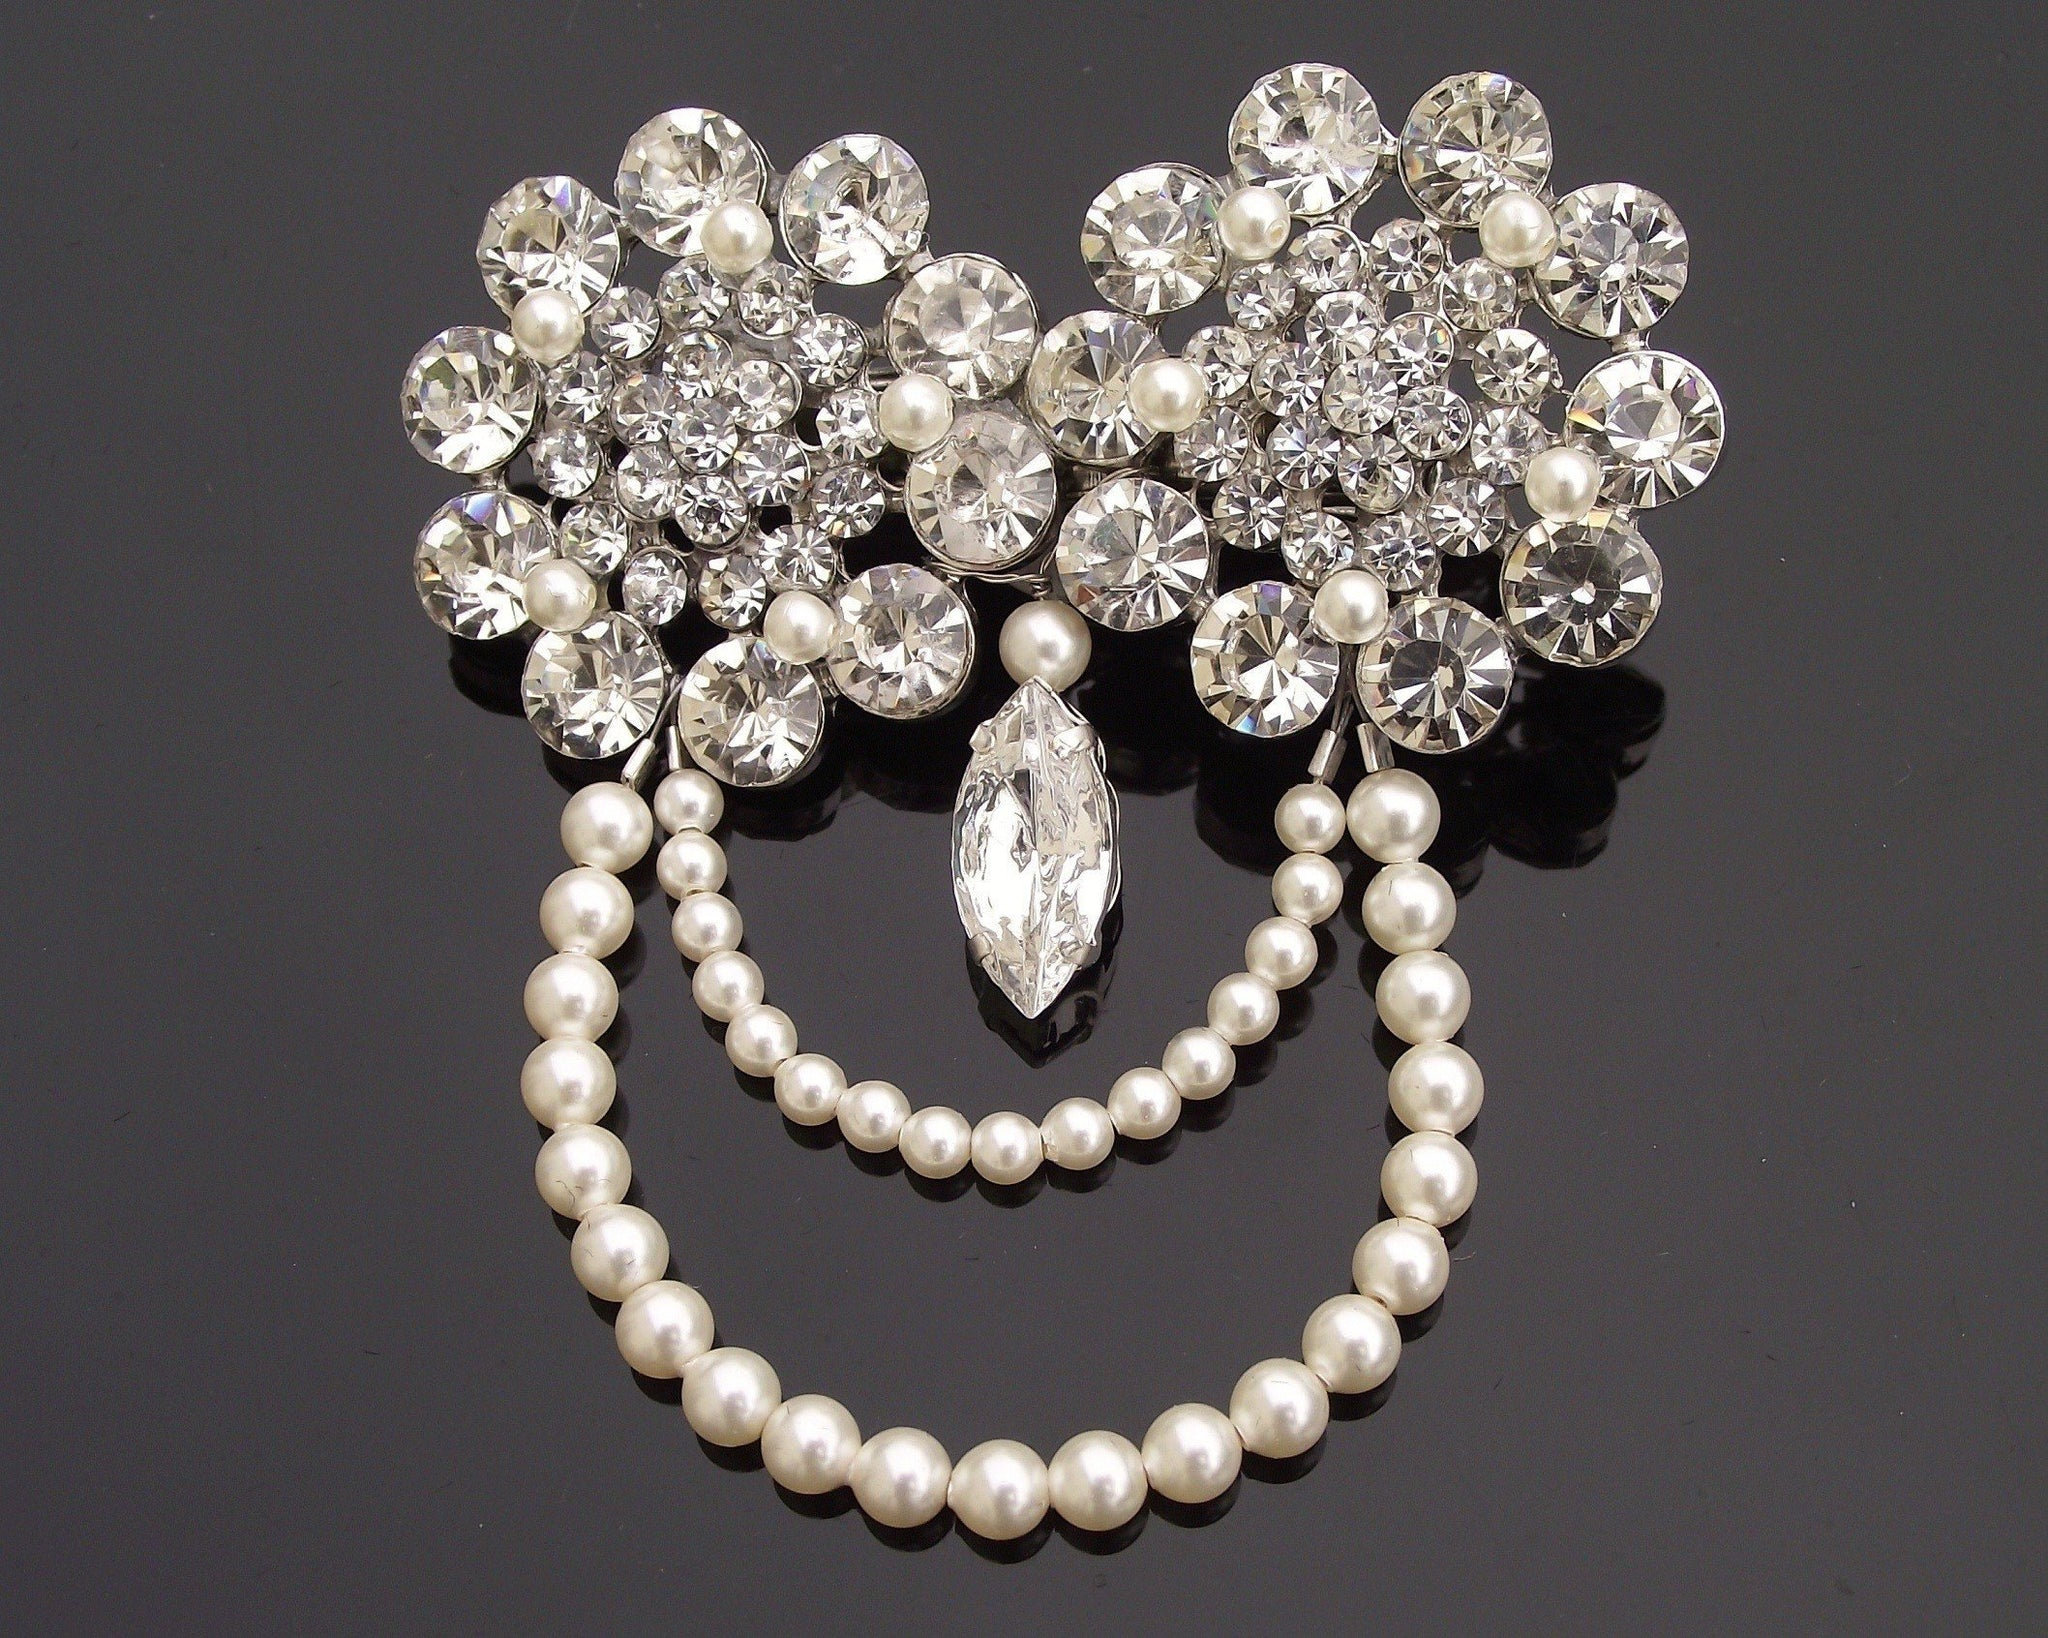 Wedding Hair Clips - 1920s Style Pearl Hair Clip With Crystals & Rhinestones, Carey